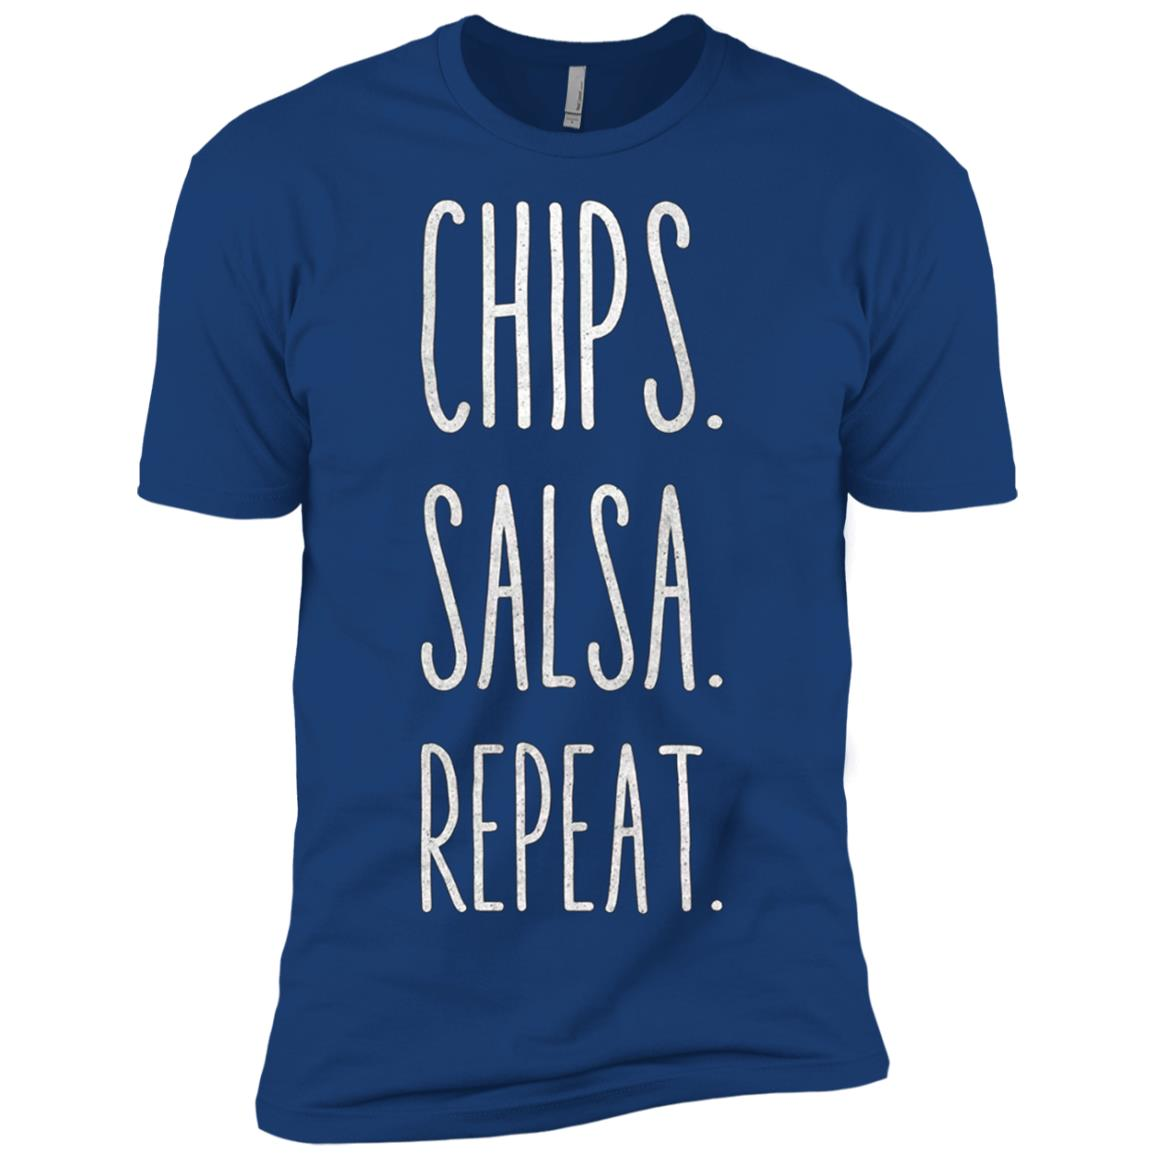 Chips. Salsa. Repeat. Funny Men Short Sleeve T-Shirt